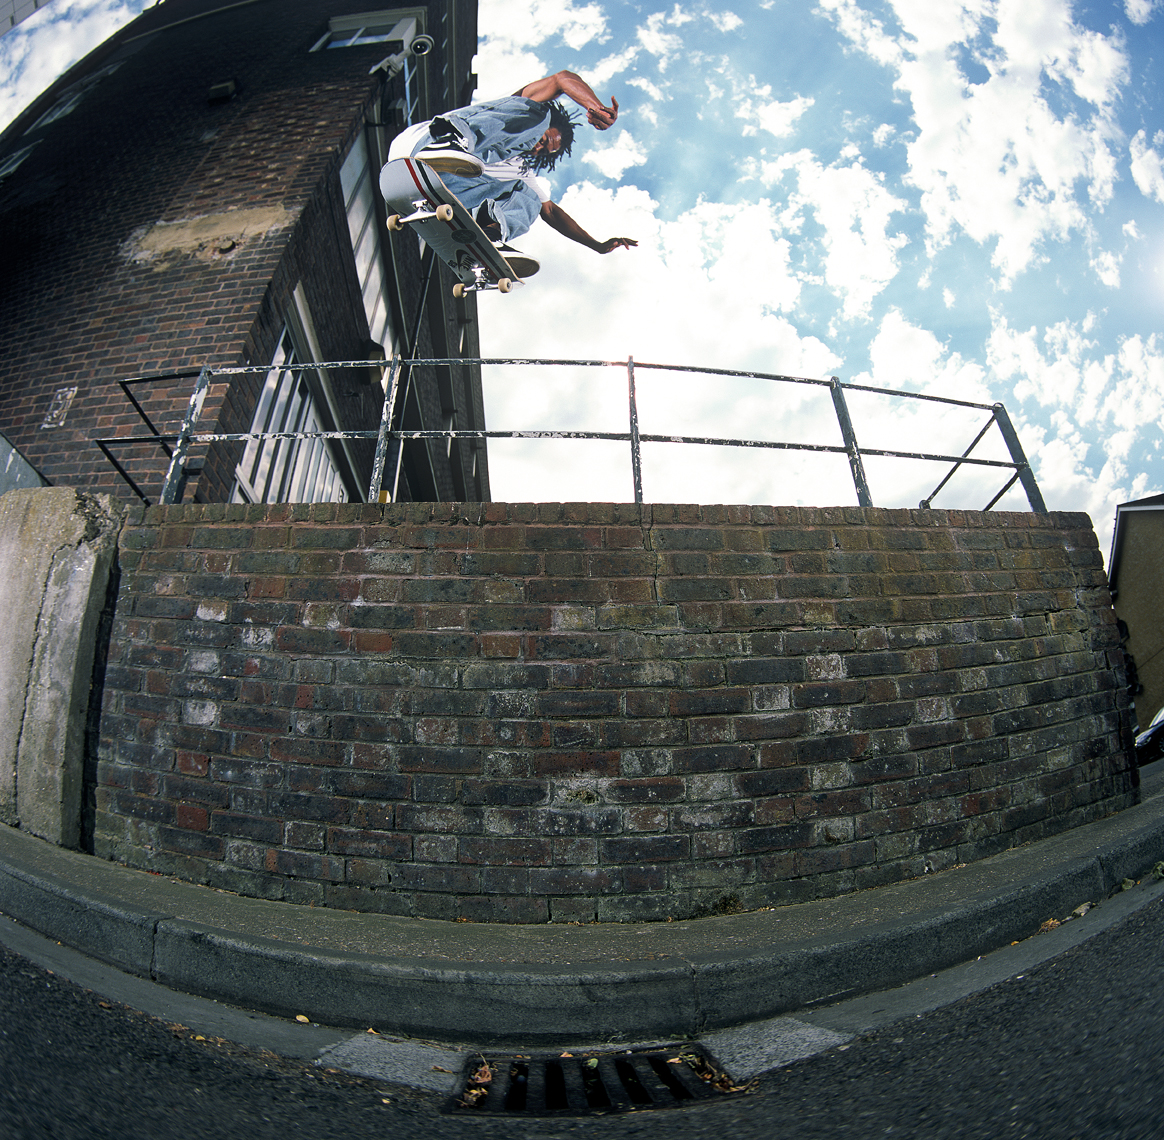 Switch Heelflip - Featured on North 19 Cover